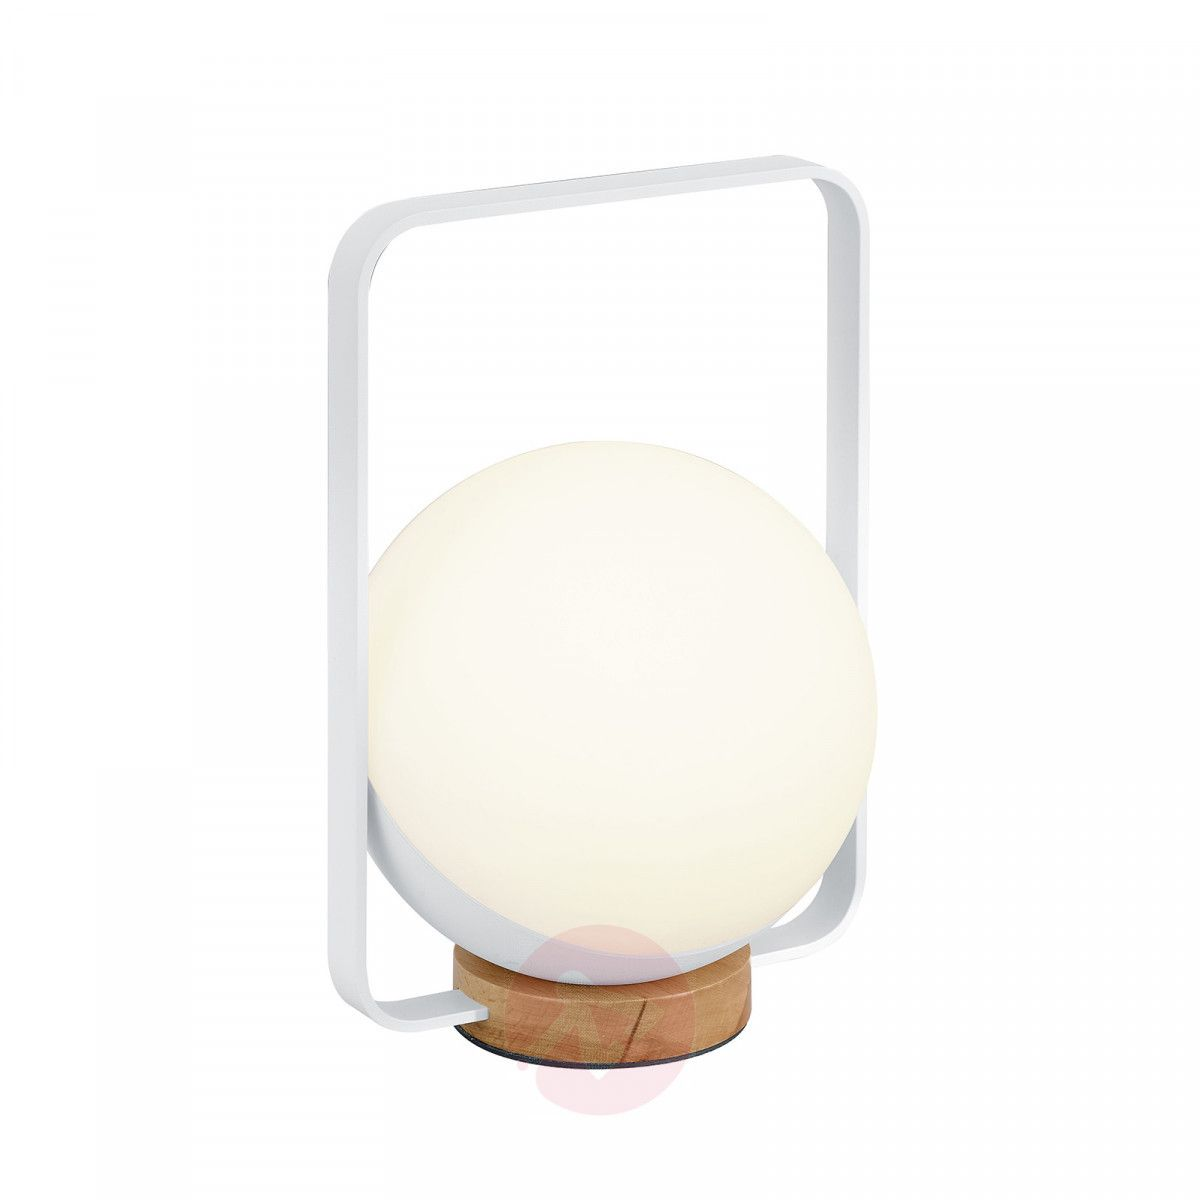 50 Inspirant Lampe Mit Akku Des Images In 2020 Mirror Table Lamp Mirror